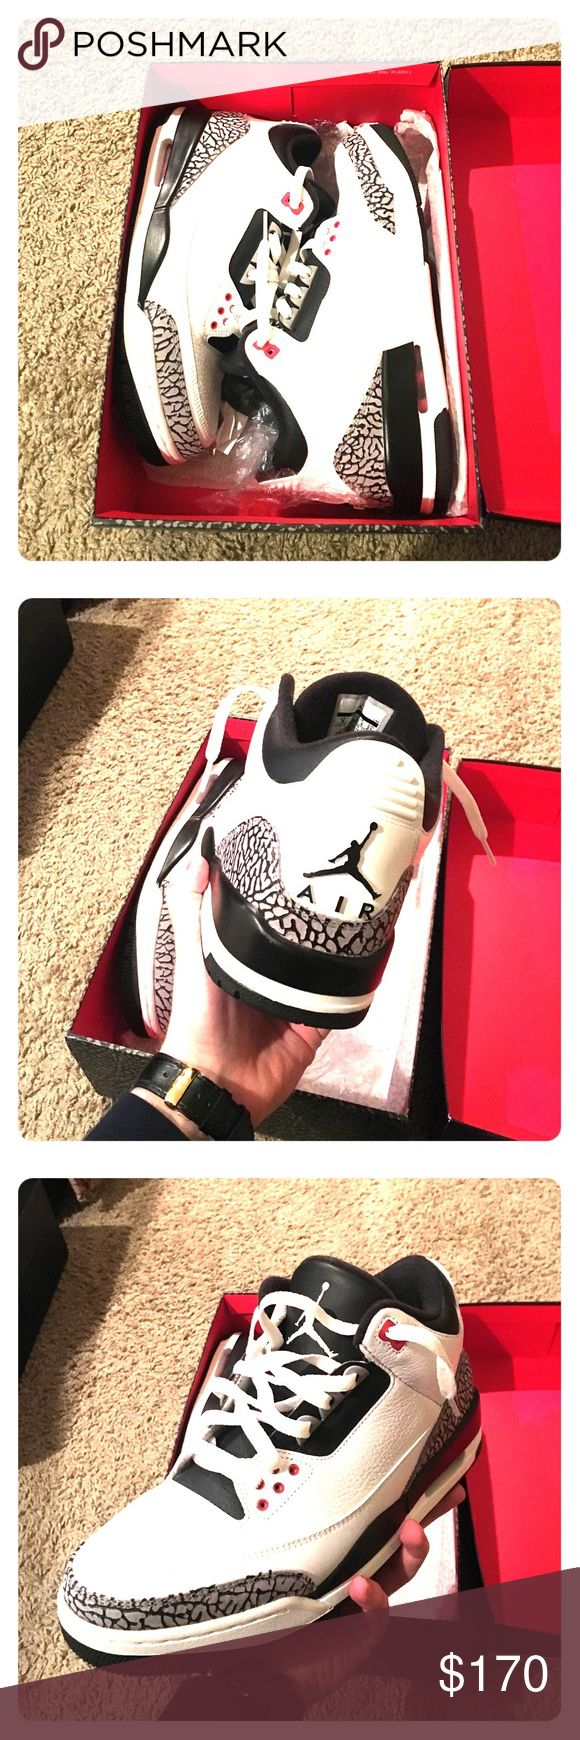 "Jordan 3 ""infrared 23"" Never worn Jordan 3's. Still with box and everything. Jordan Shoes Sneakers"